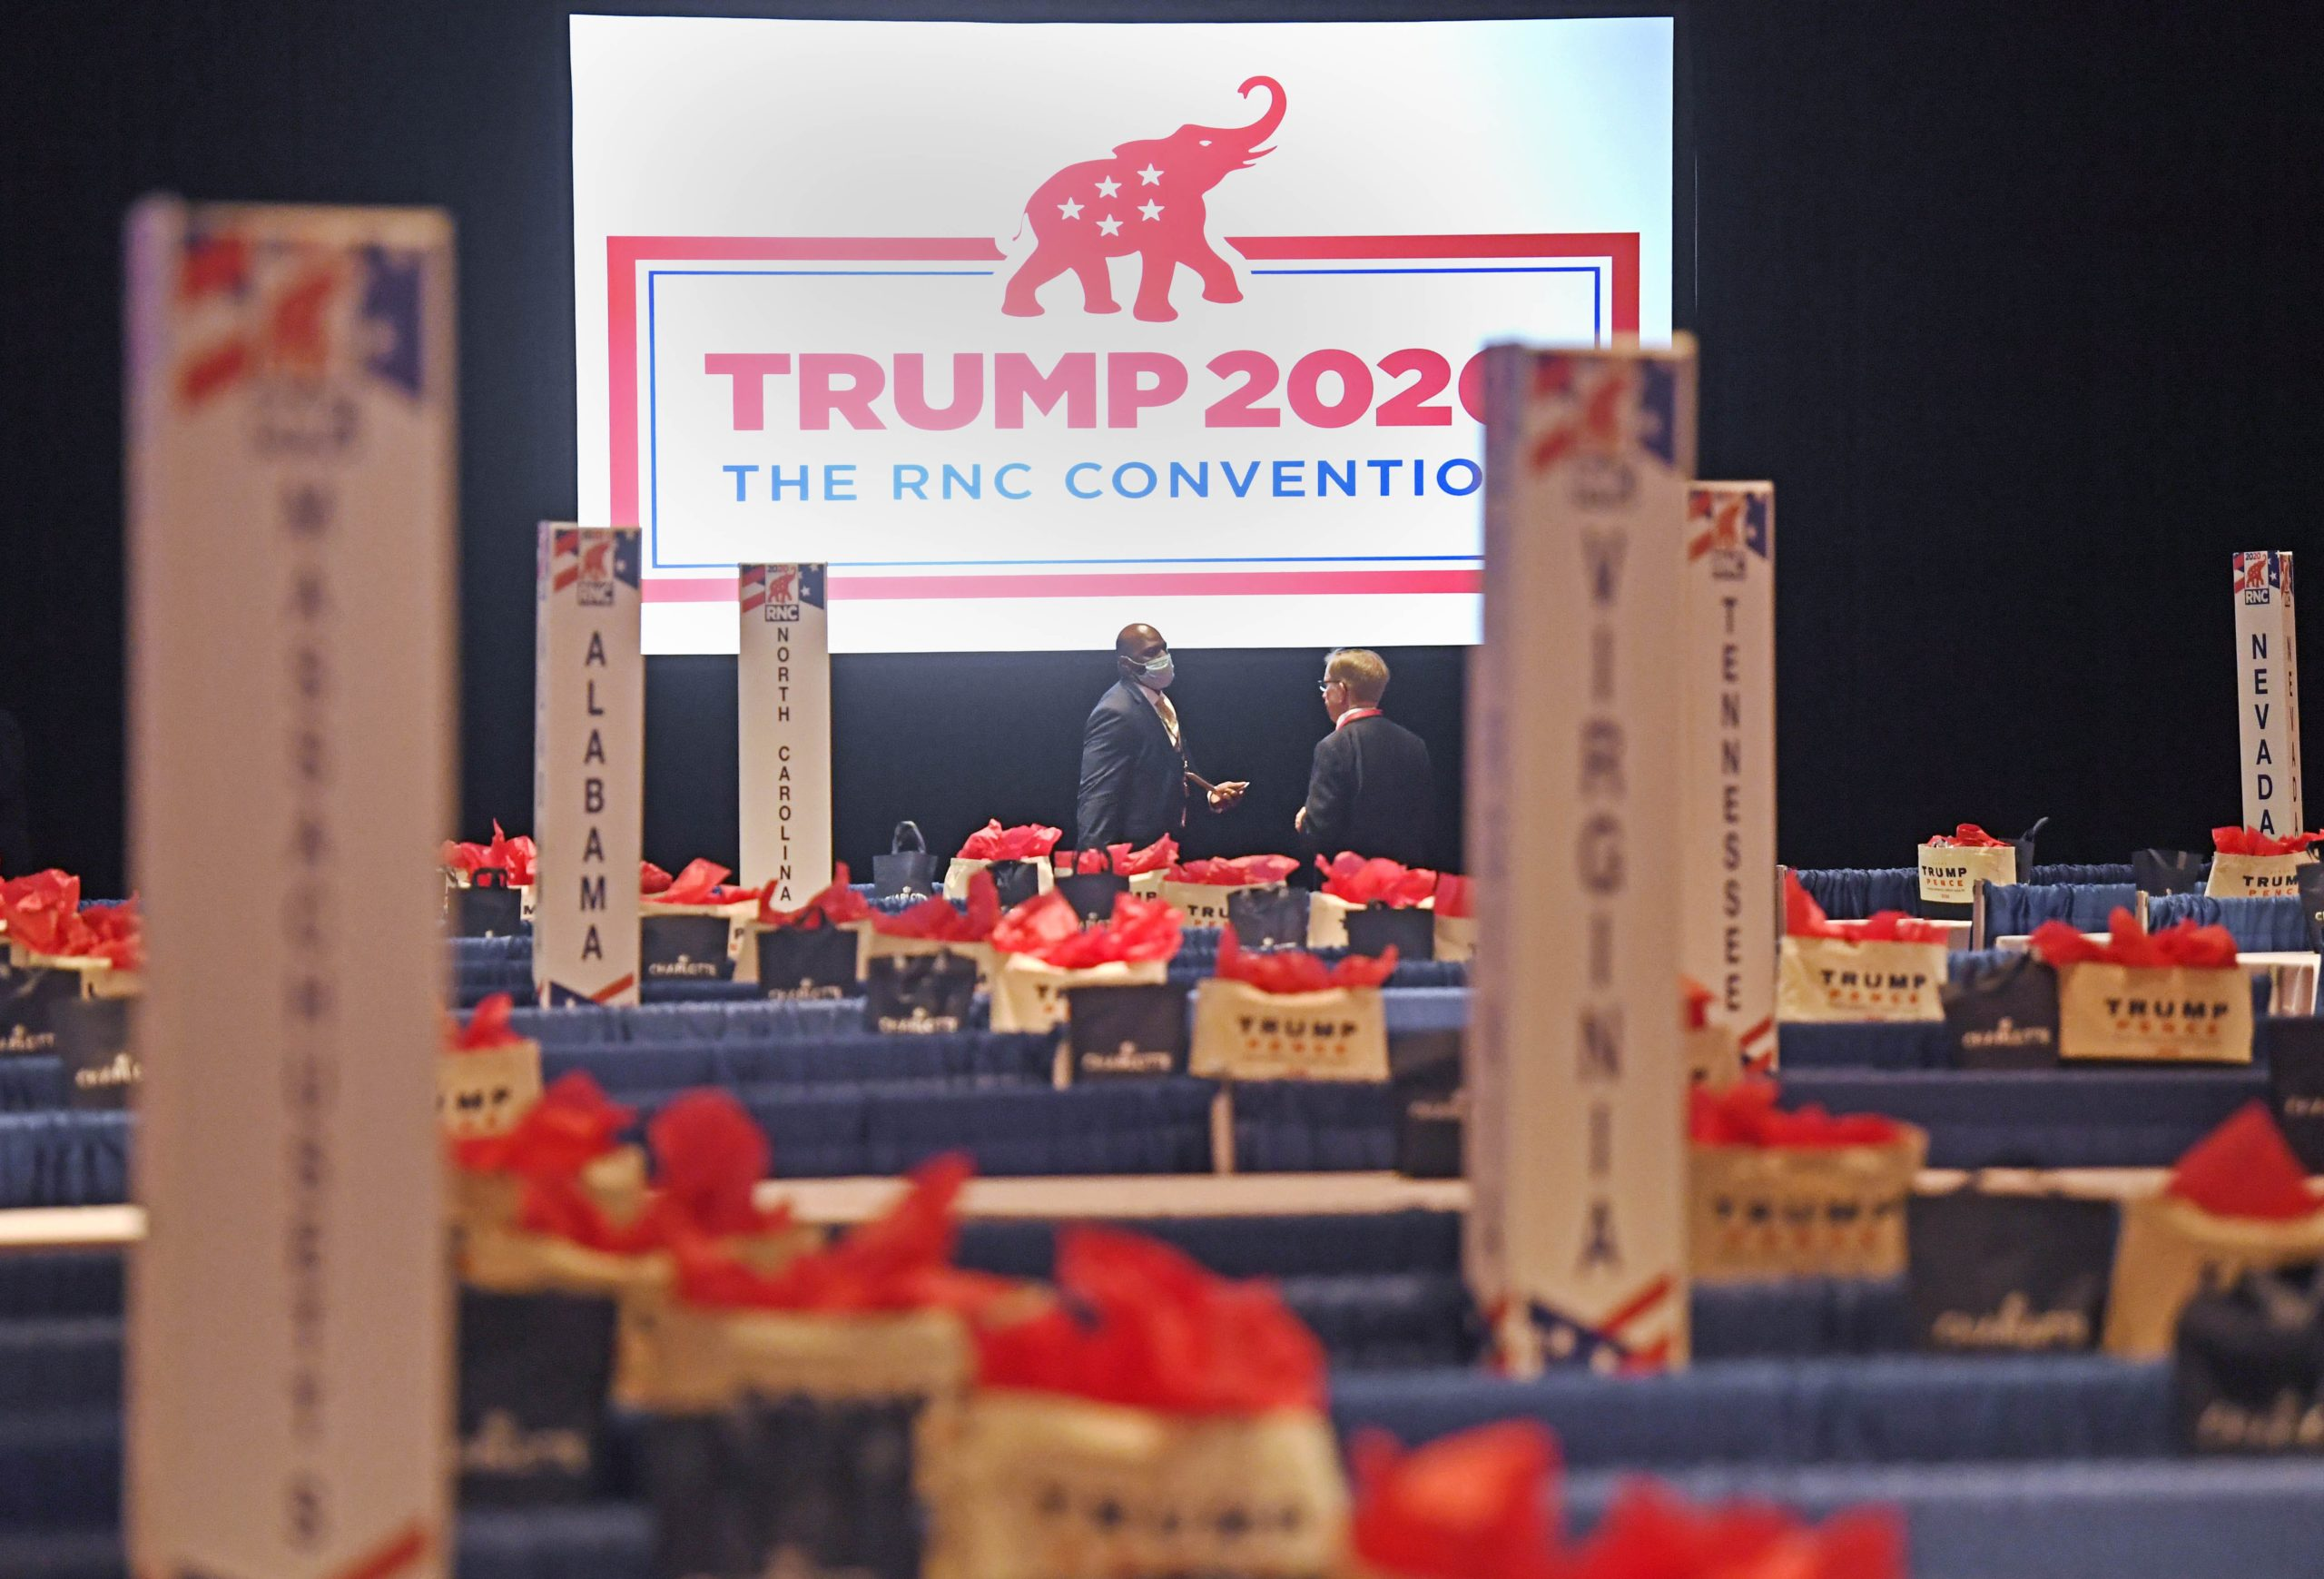 Usa 2020 - convention repubblicana - reality